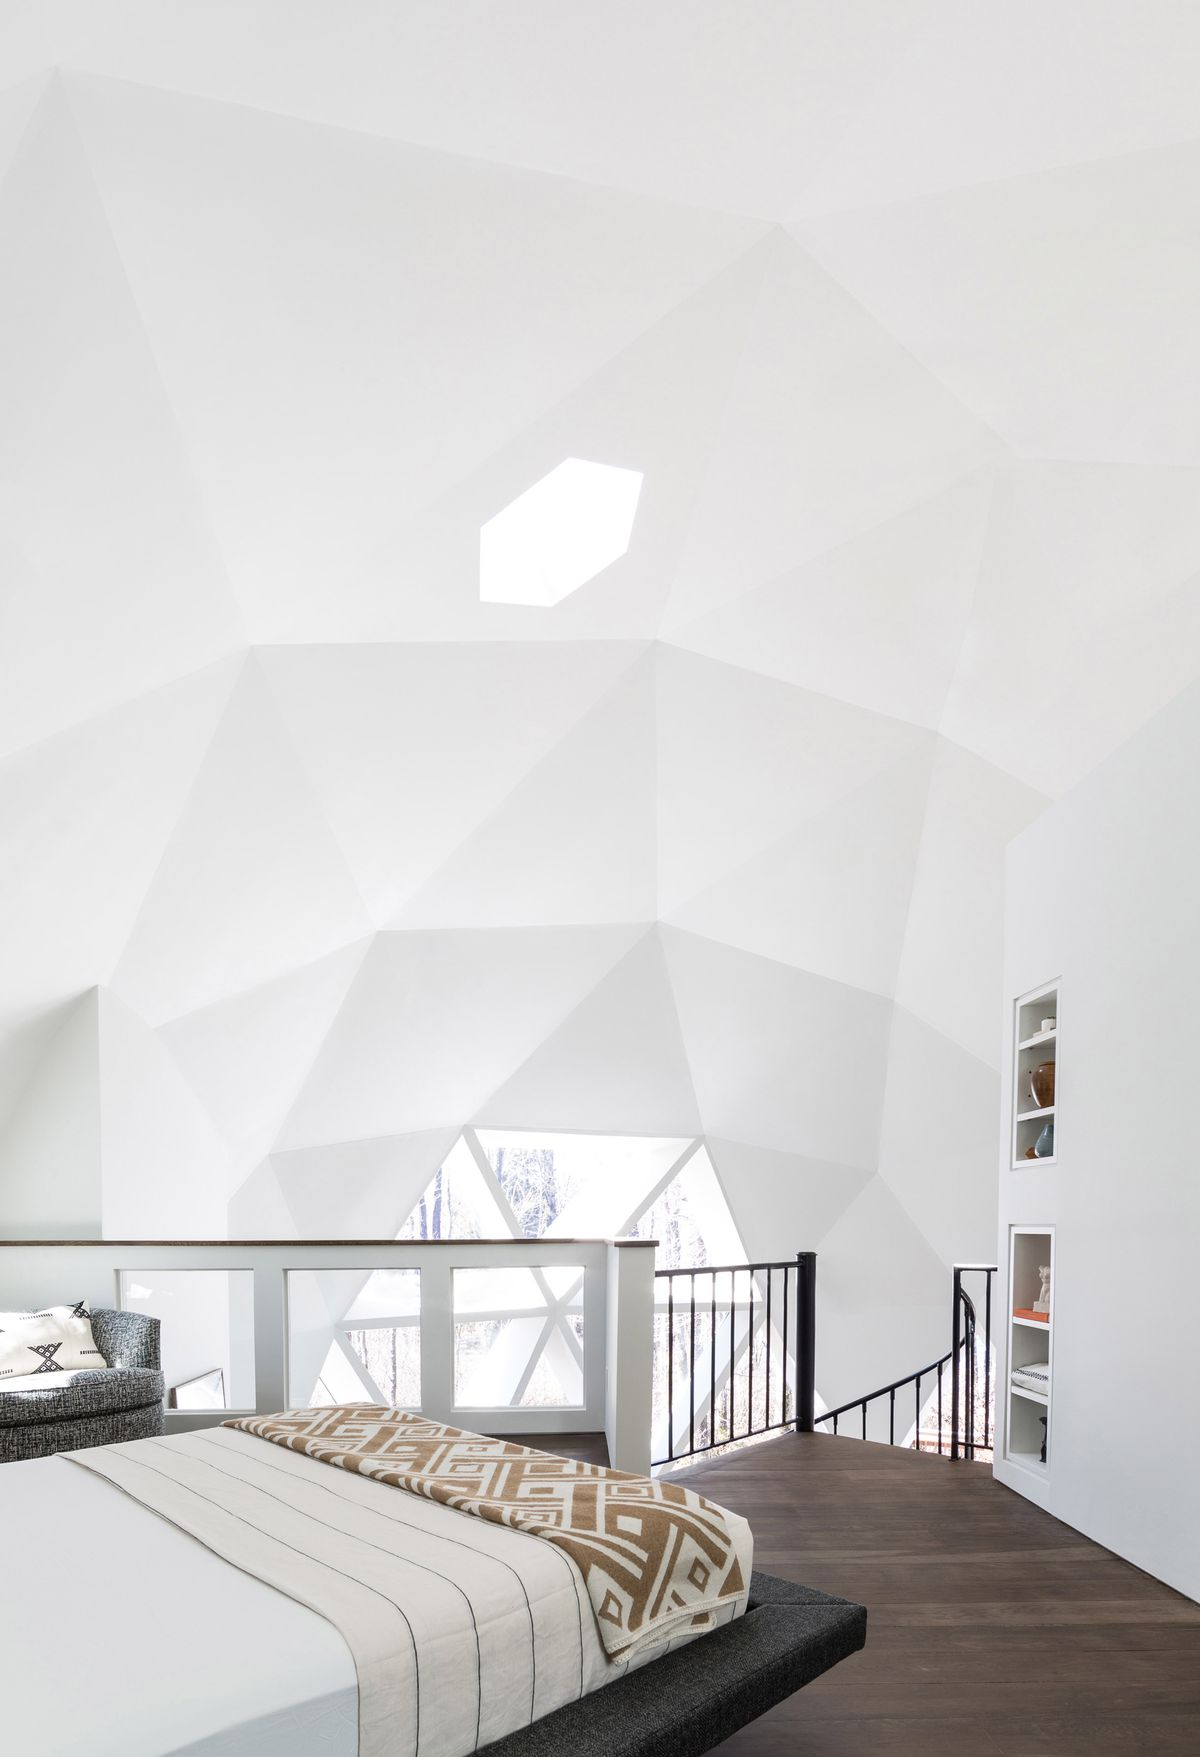 Lofted bedroom in a dome home.